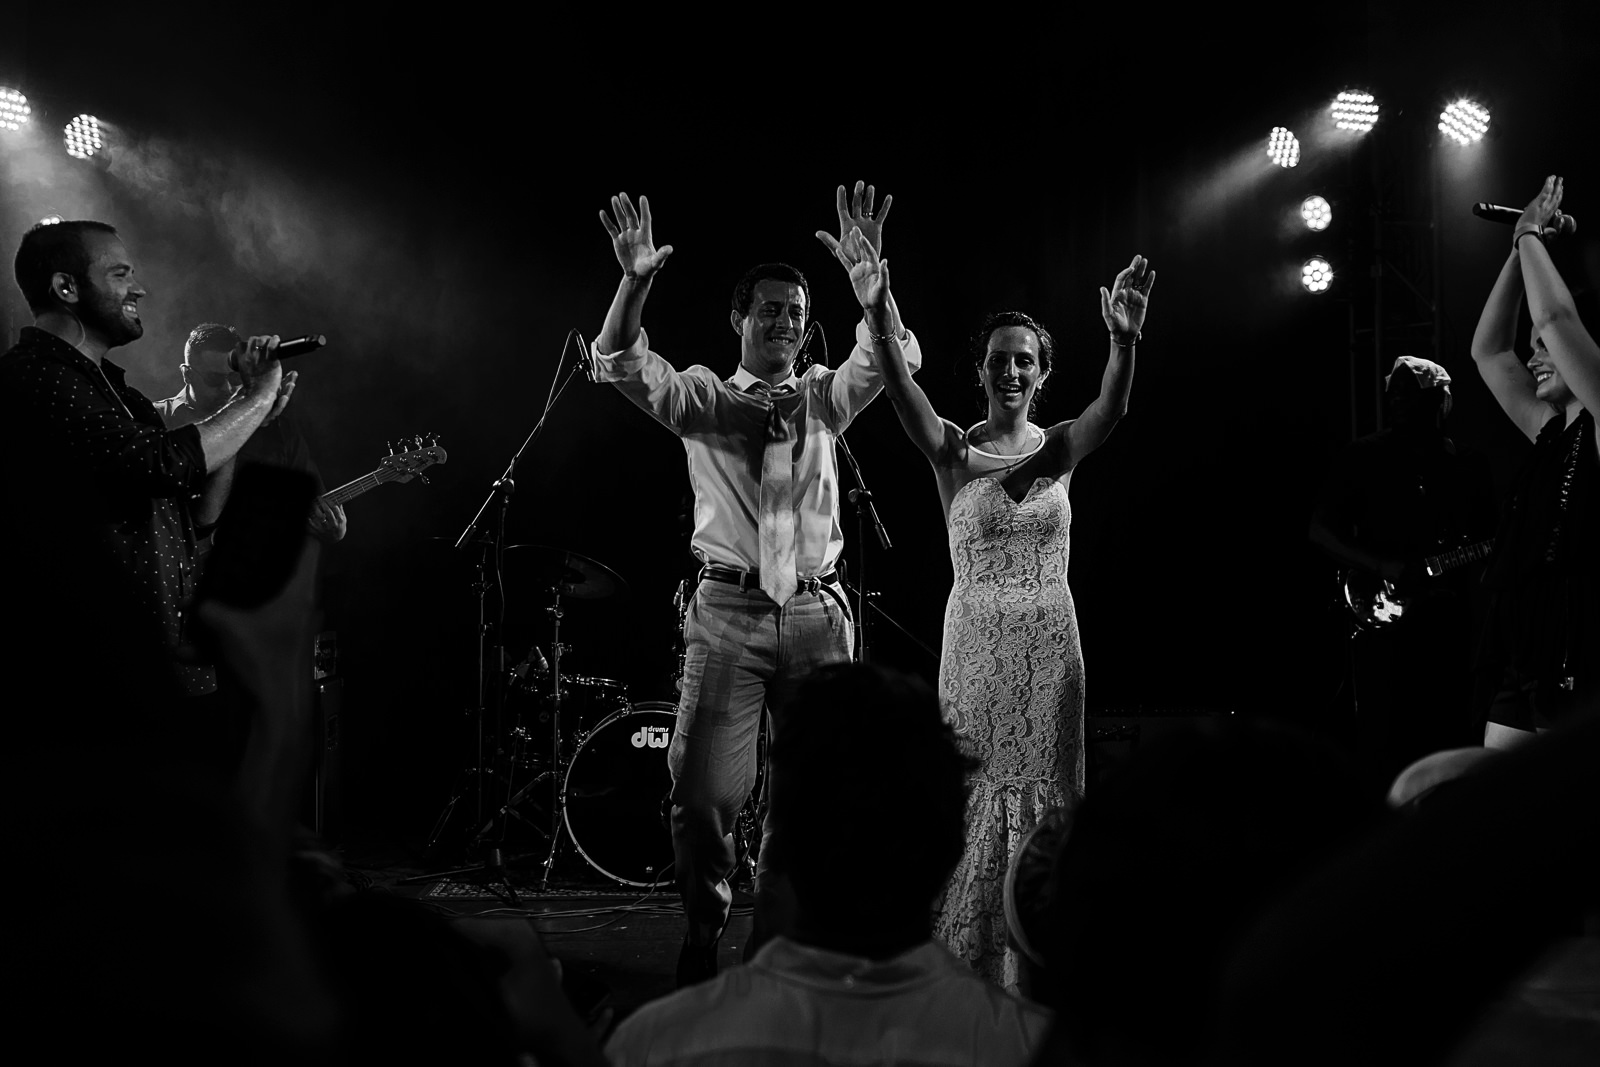 Couple on stage for last song at wedding reception - Eder Acevedo cancun los cabos vallarta wedding photographer